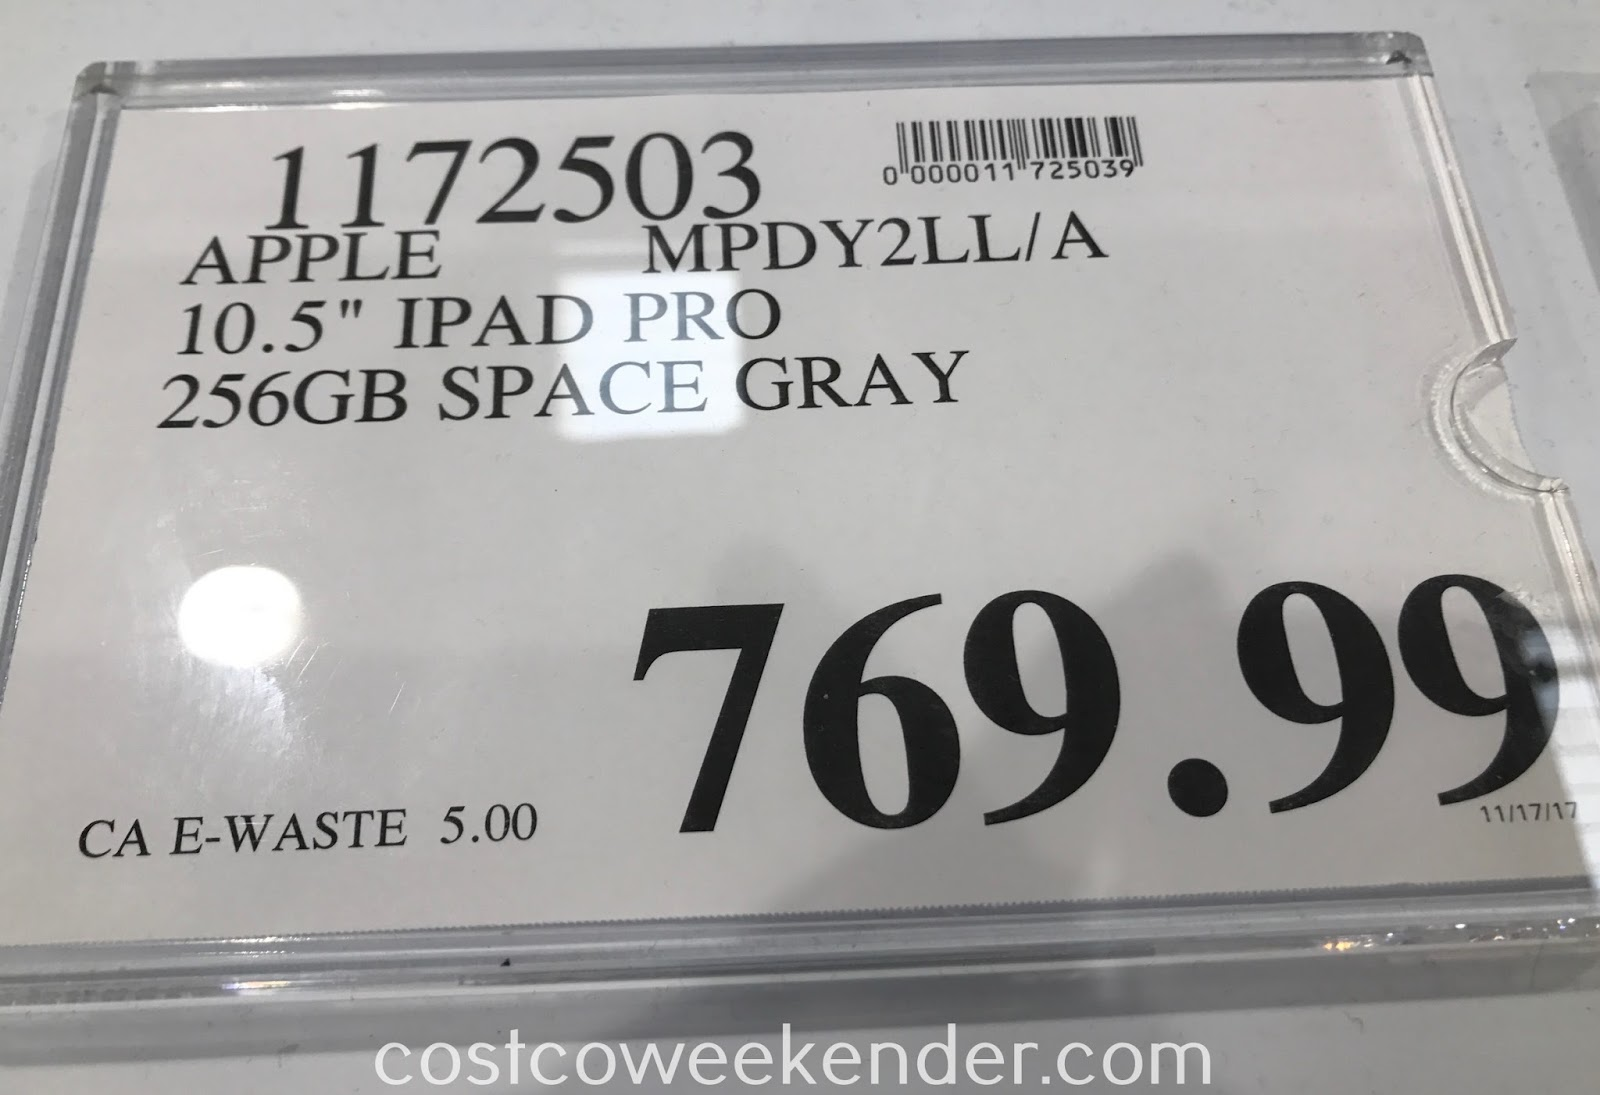 Deal for the Apple iPad Pro 10.5in 256GB Space Gray (MPDY2LL/A) at Costco